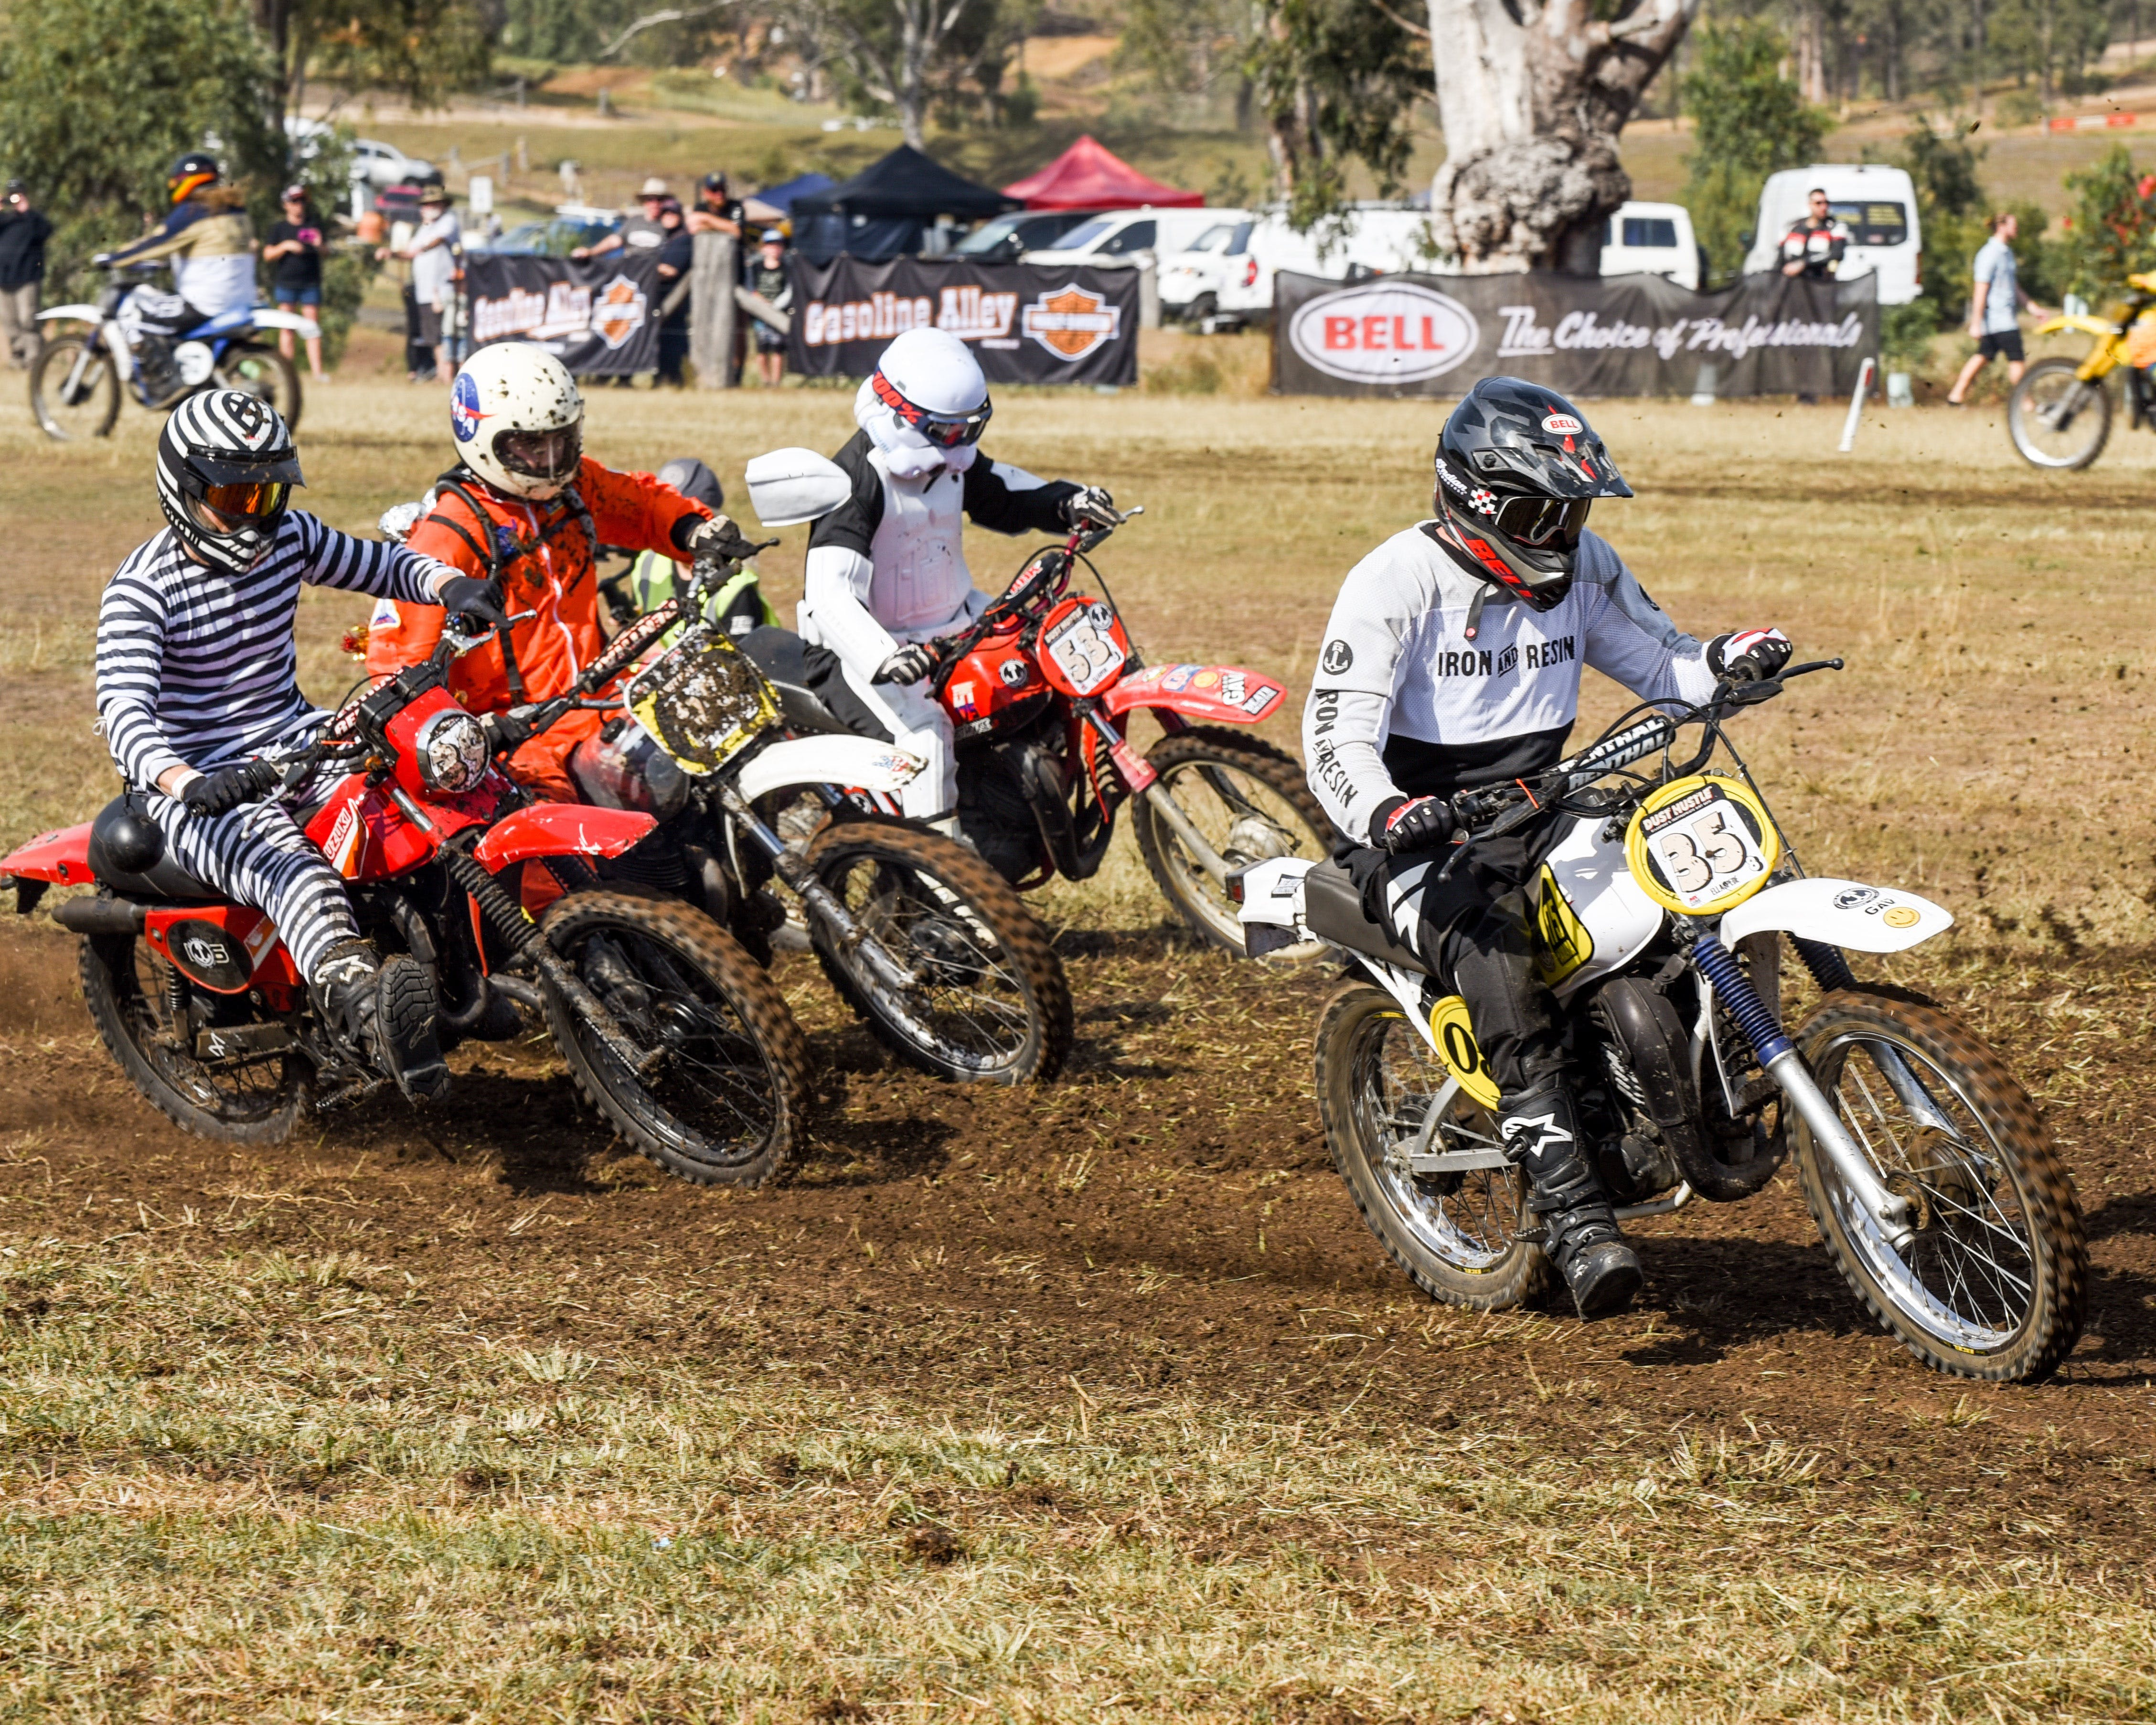 Dust Hustle Queensland Moto Park - Palm Beach Accommodation